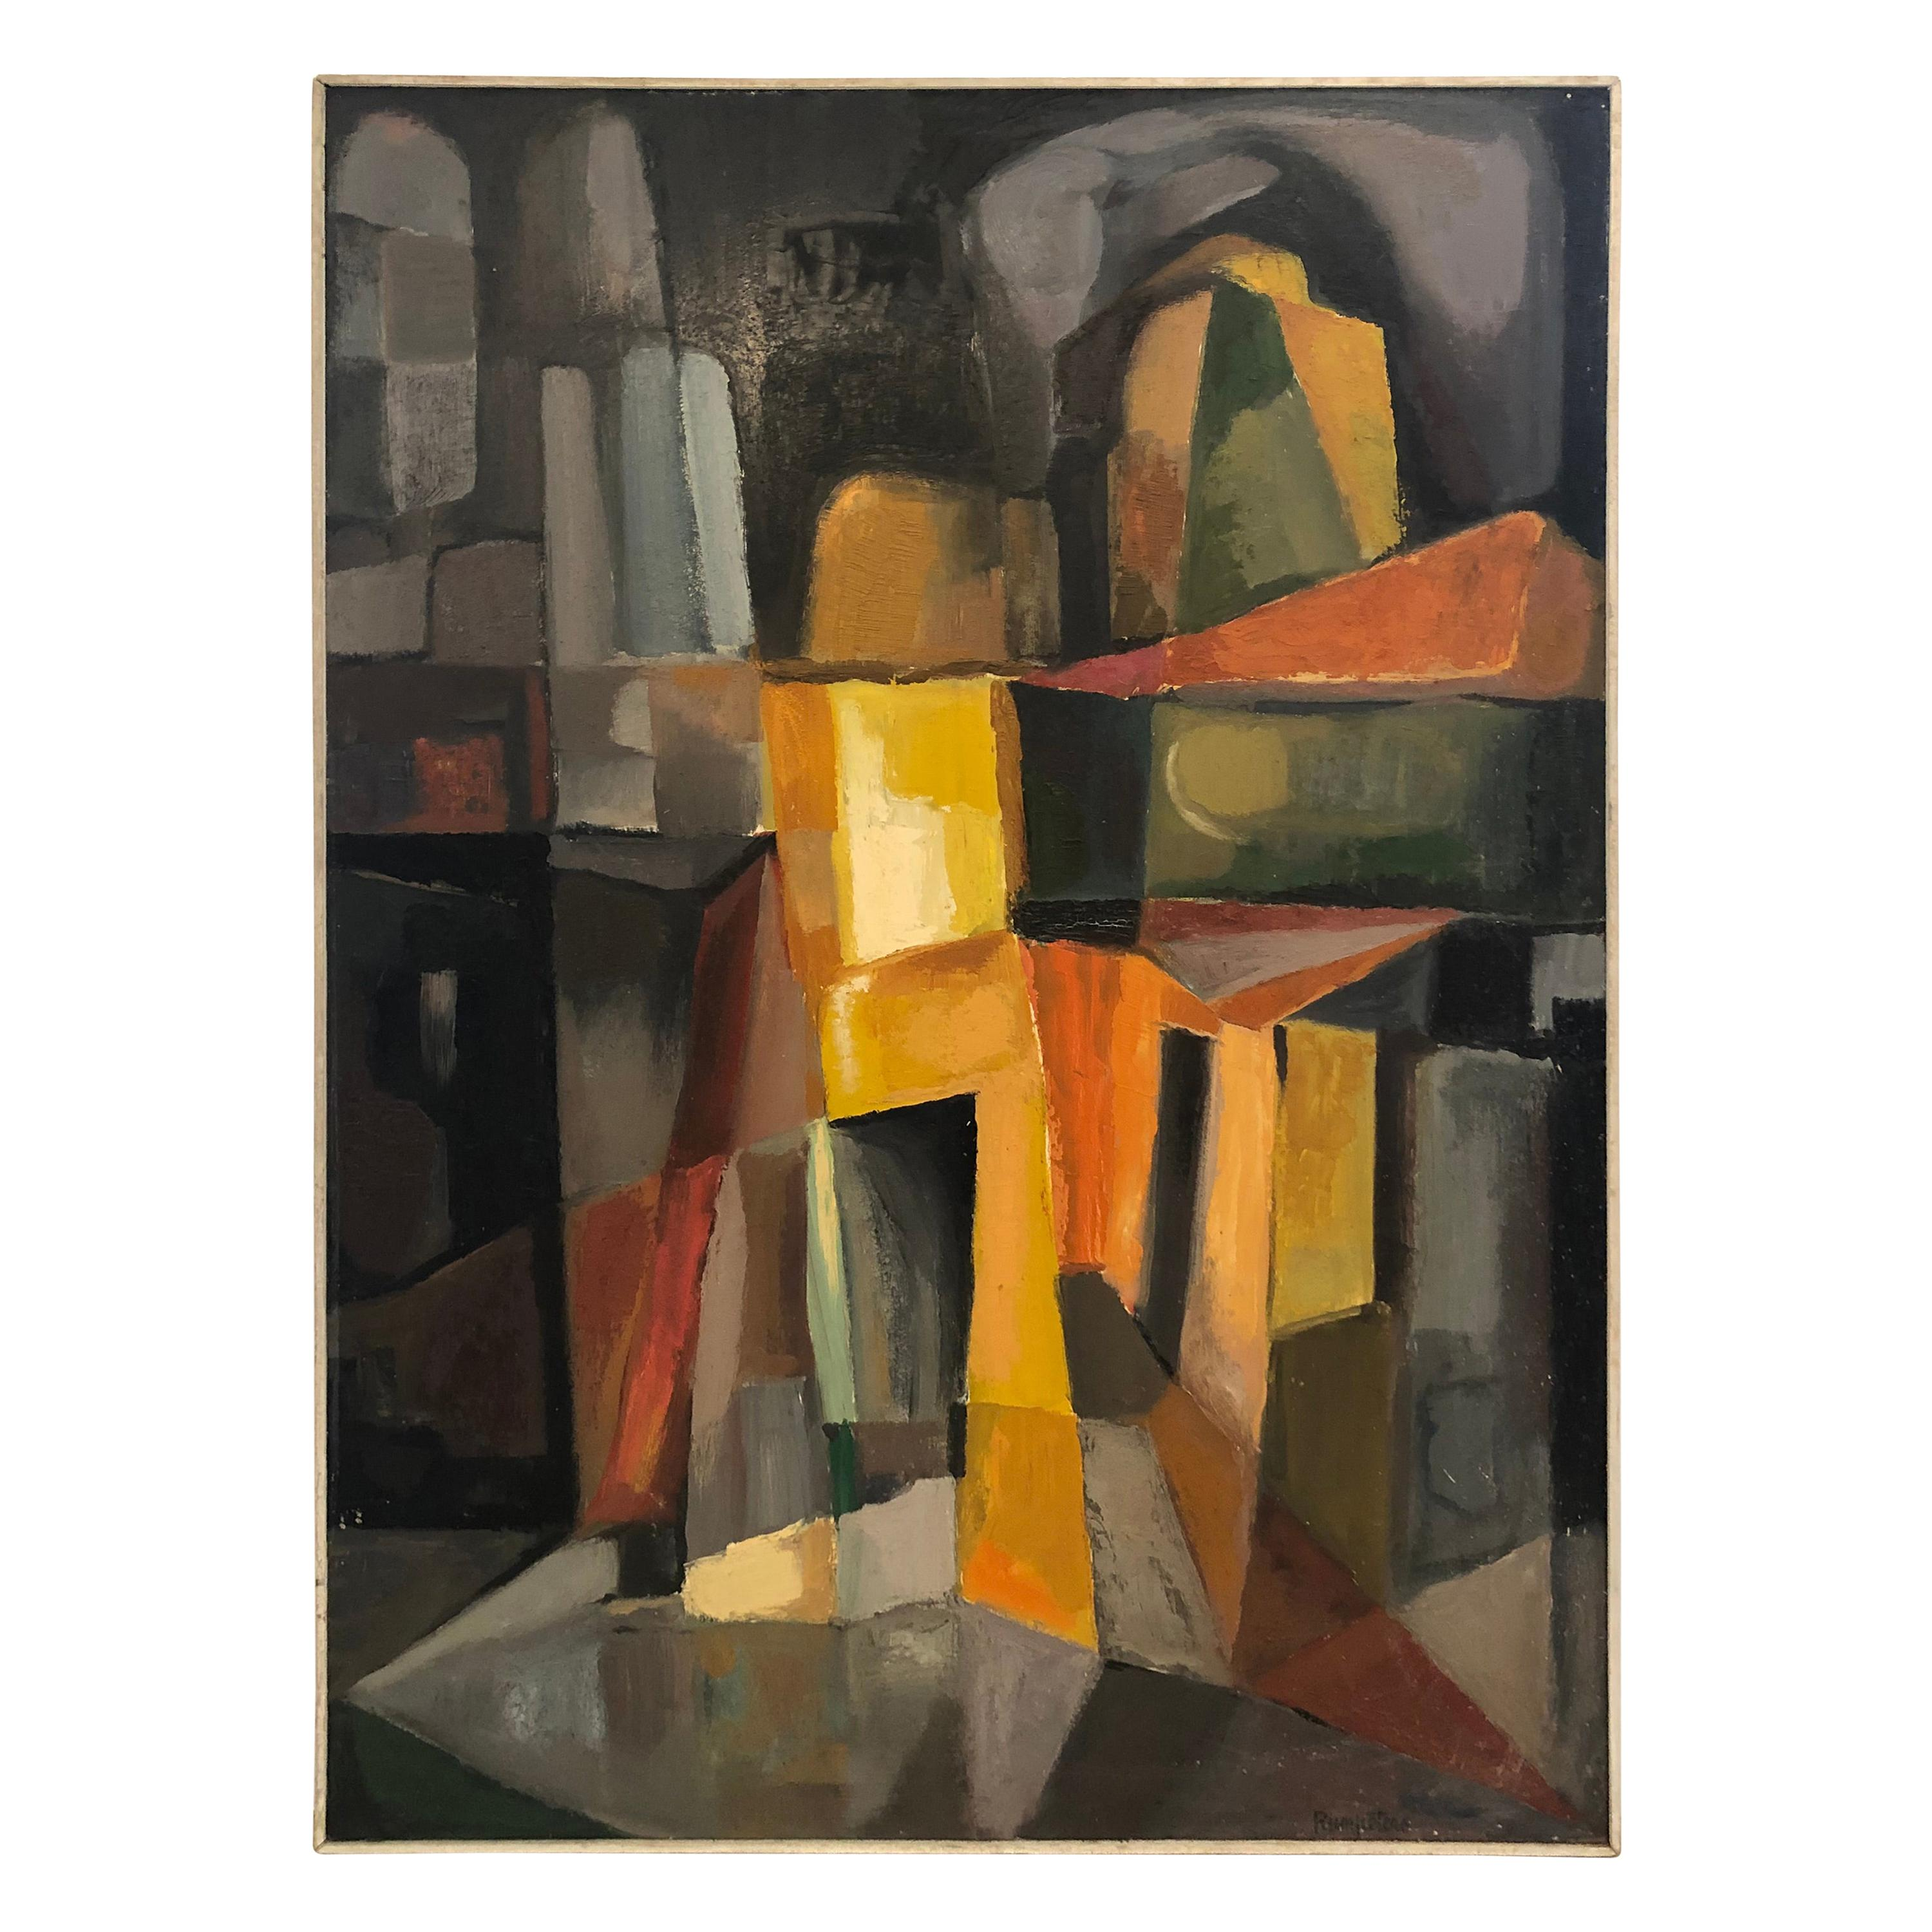 Striking Cubist Abstract Painting in Orange, Yellow, Grey and Black